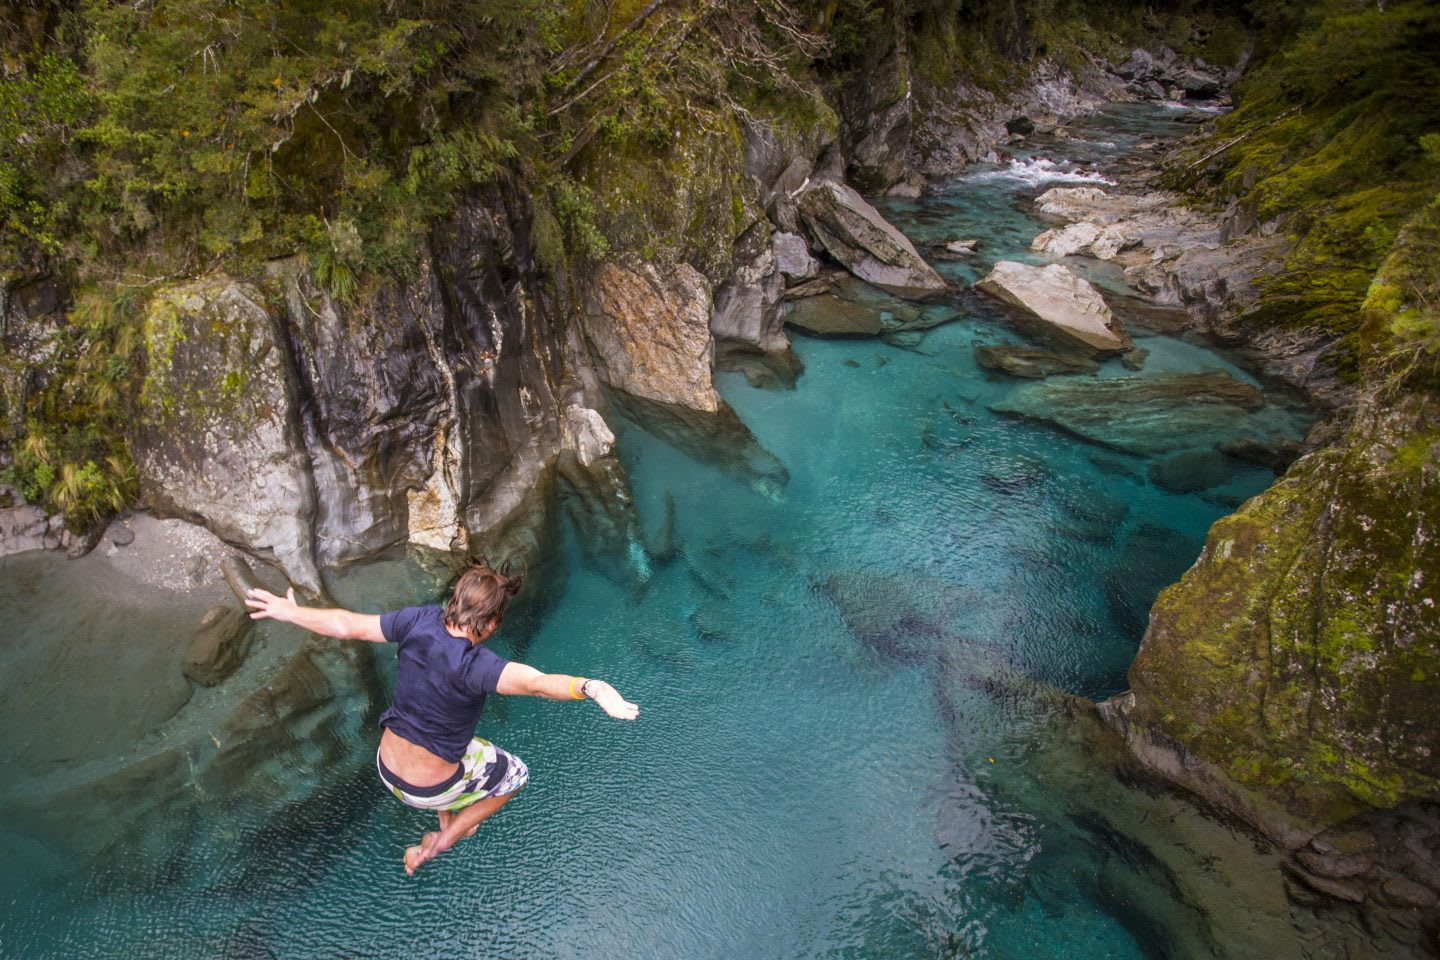 The Blue Pools of Makarora offer enticing blue waters to swim in. A man jumps off a bridge into the water, risk, unknown, leaping, confidence, GamePlan A